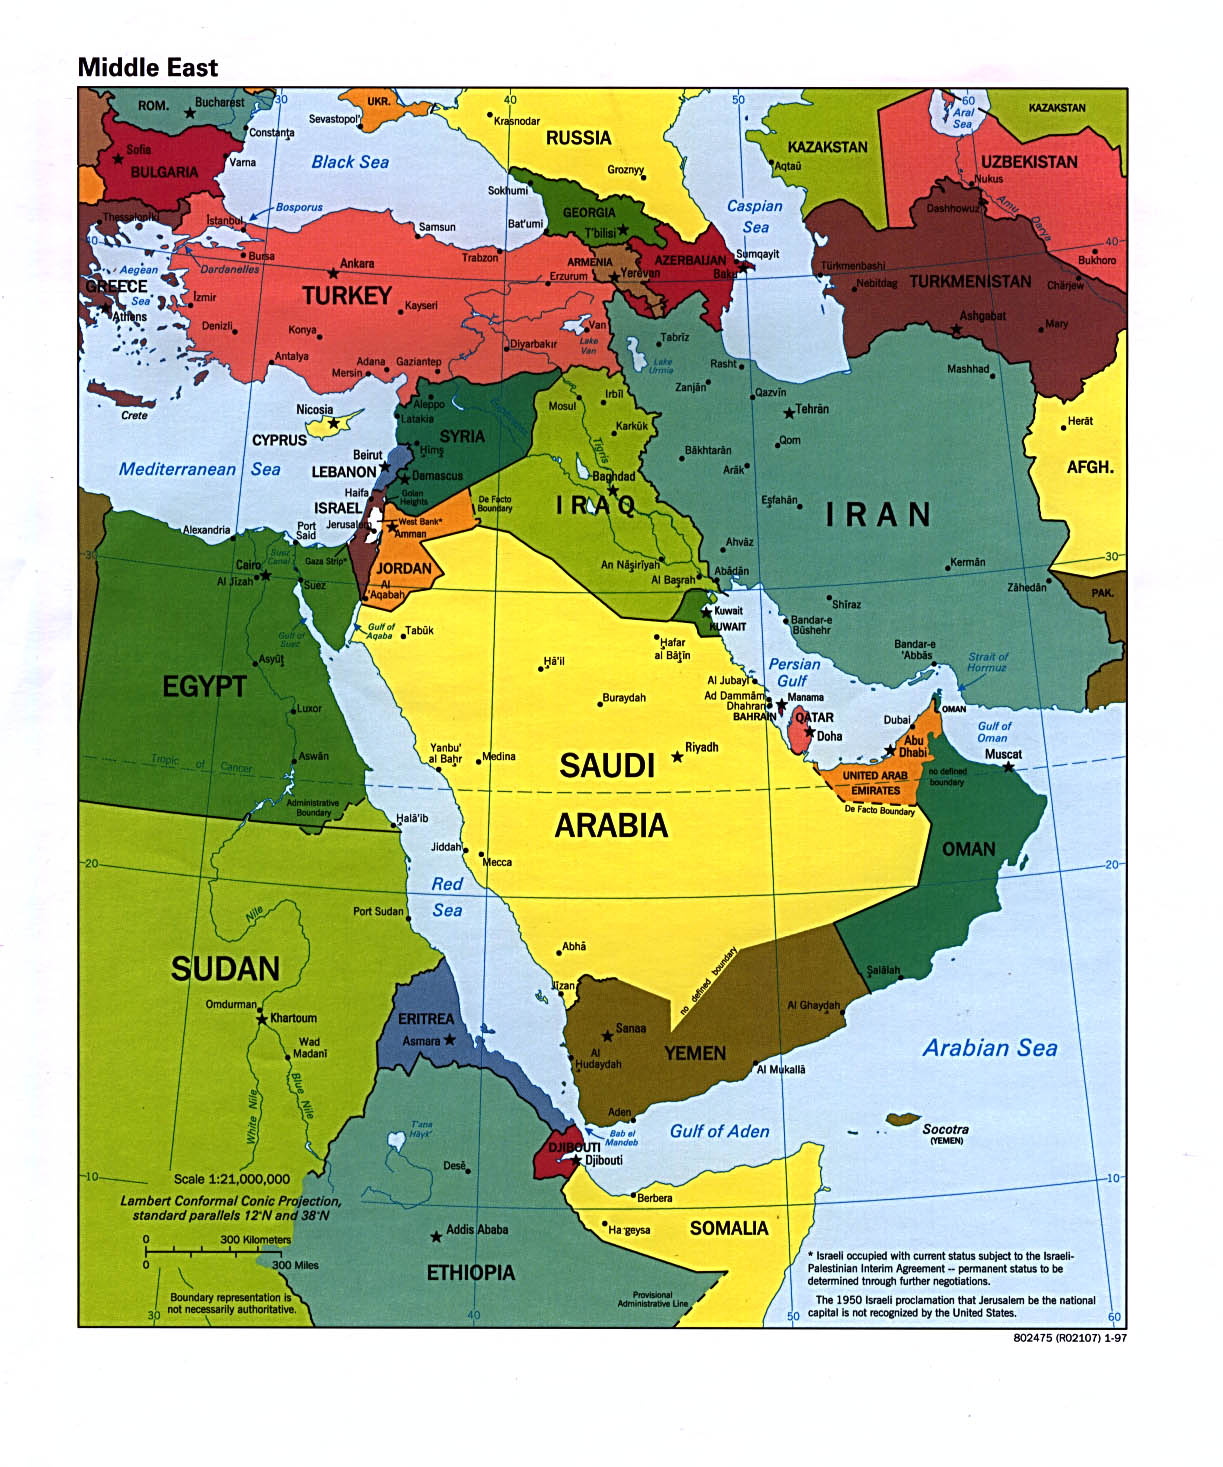 Map Of Middle East Continent. Middle East [Political Map] 1997 (315K)